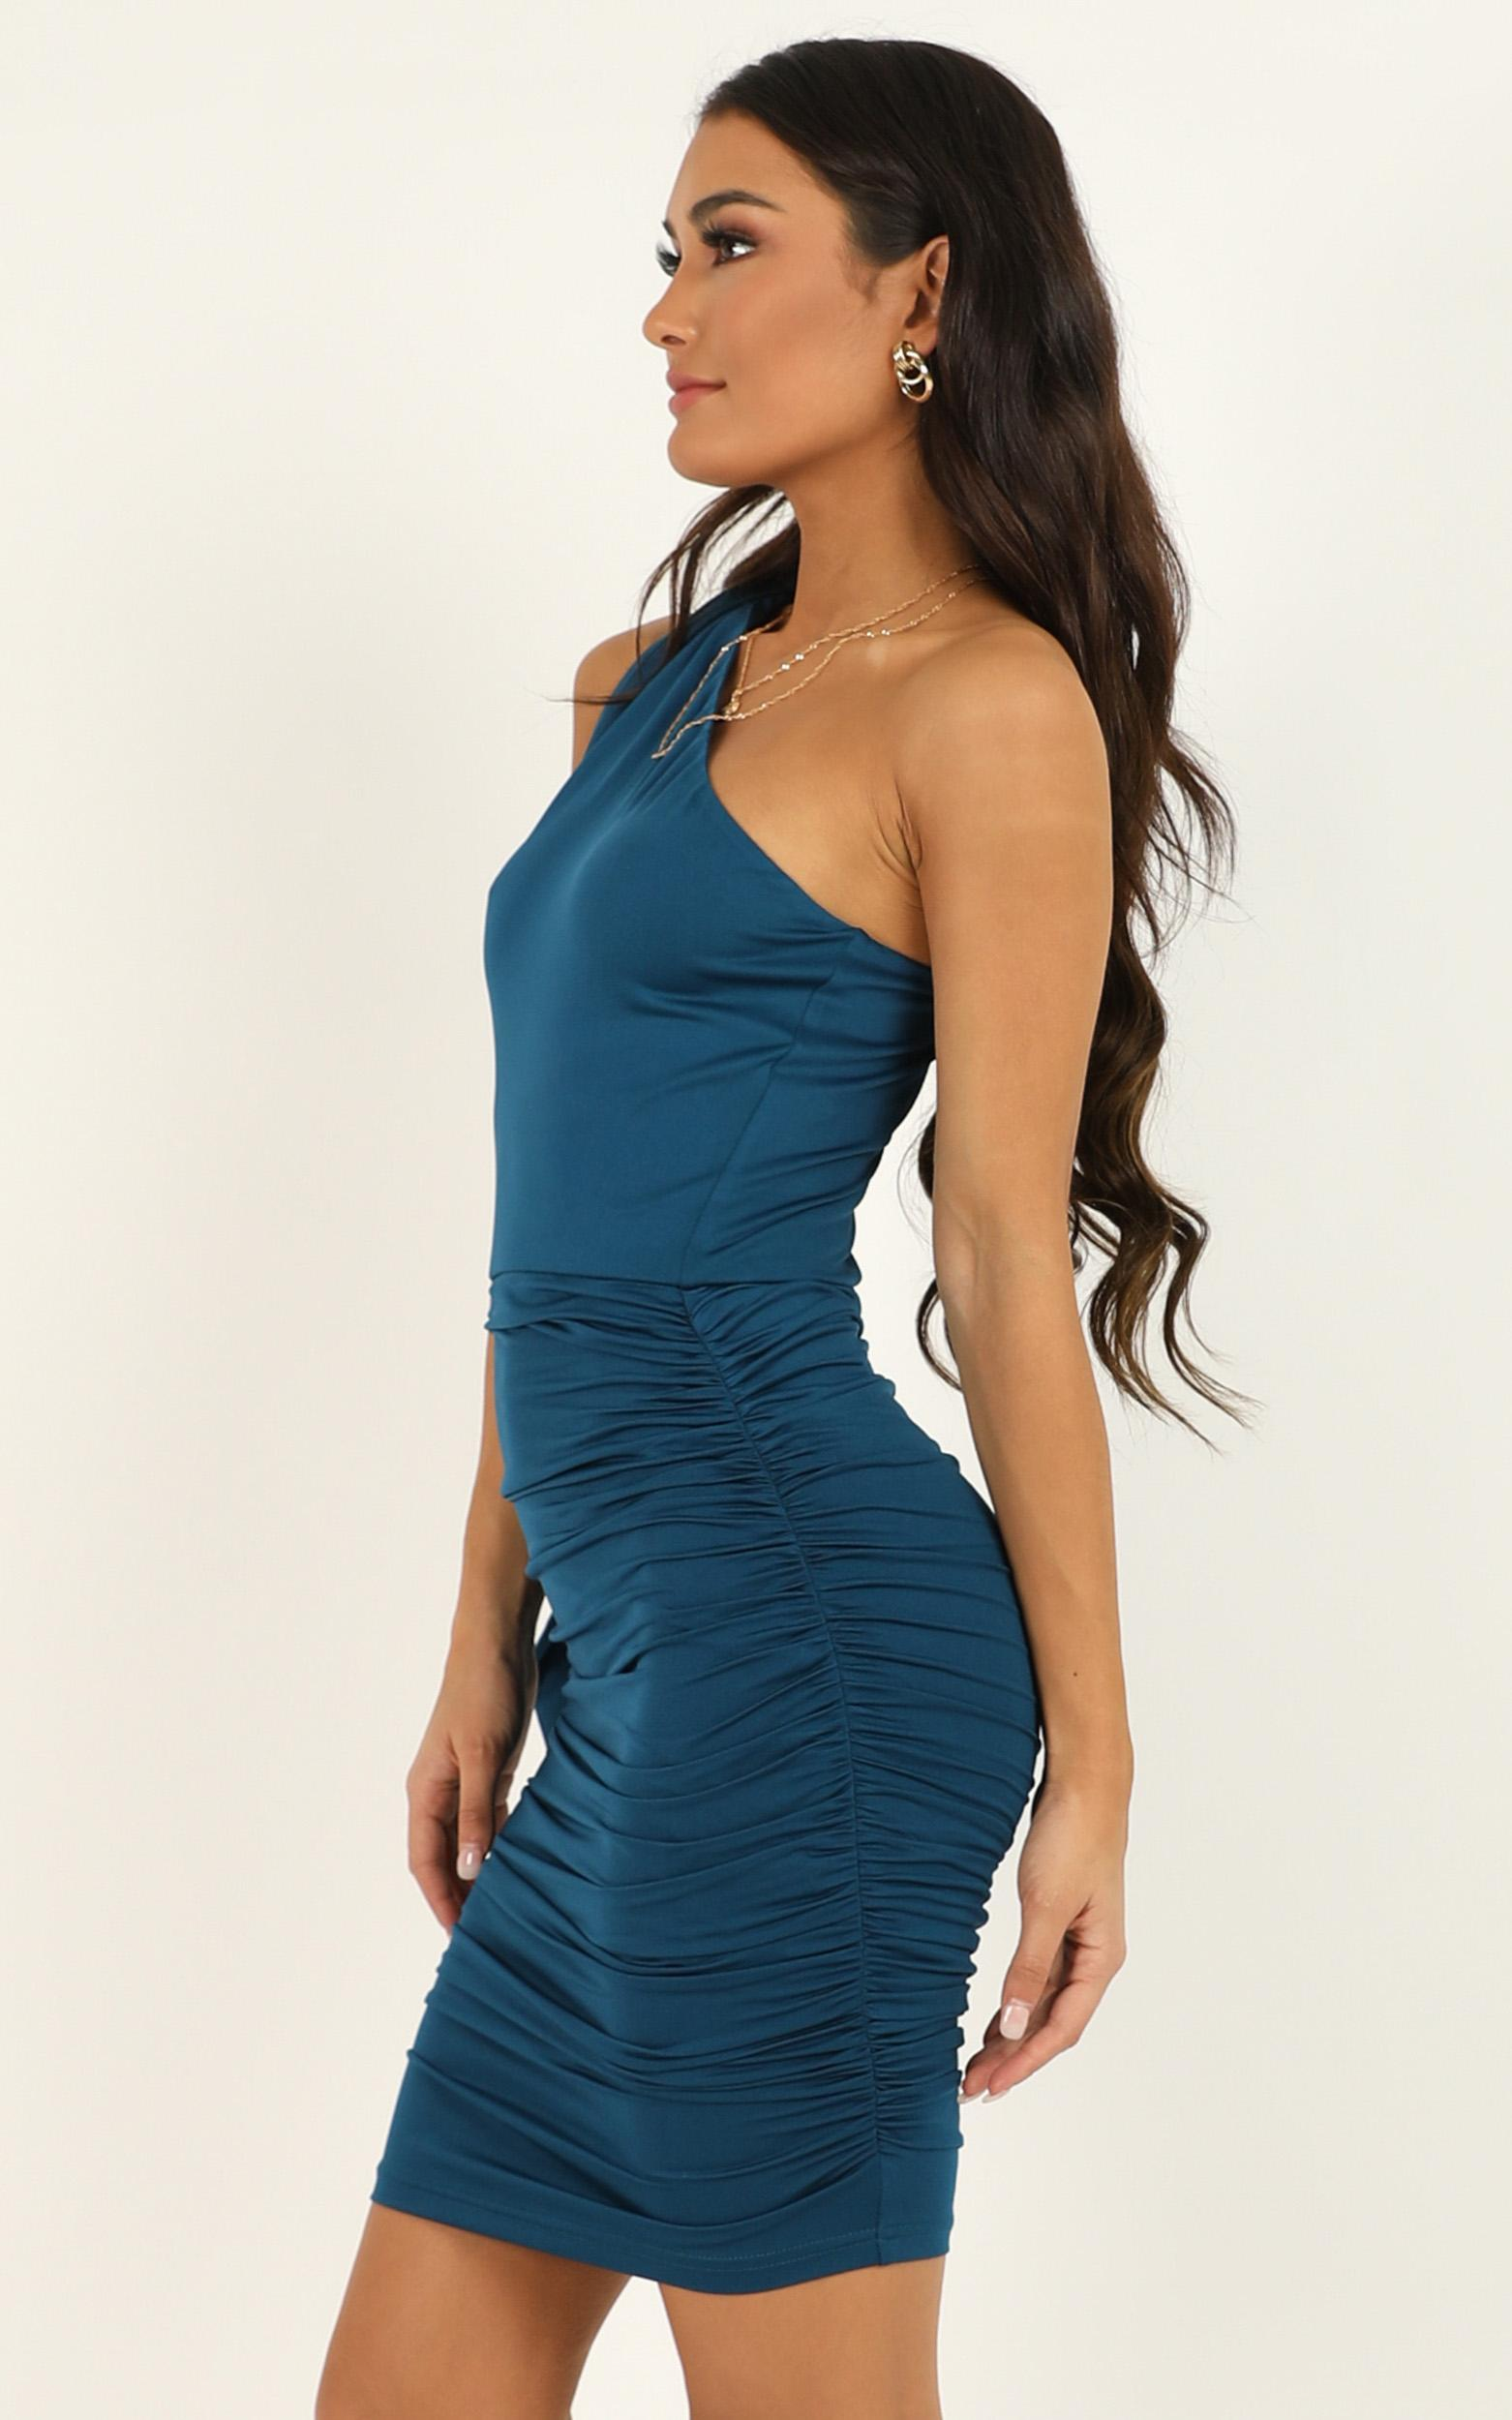 Im a seasoned dame dress in teal - 20 (XXXXL), Blue, hi-res image number null